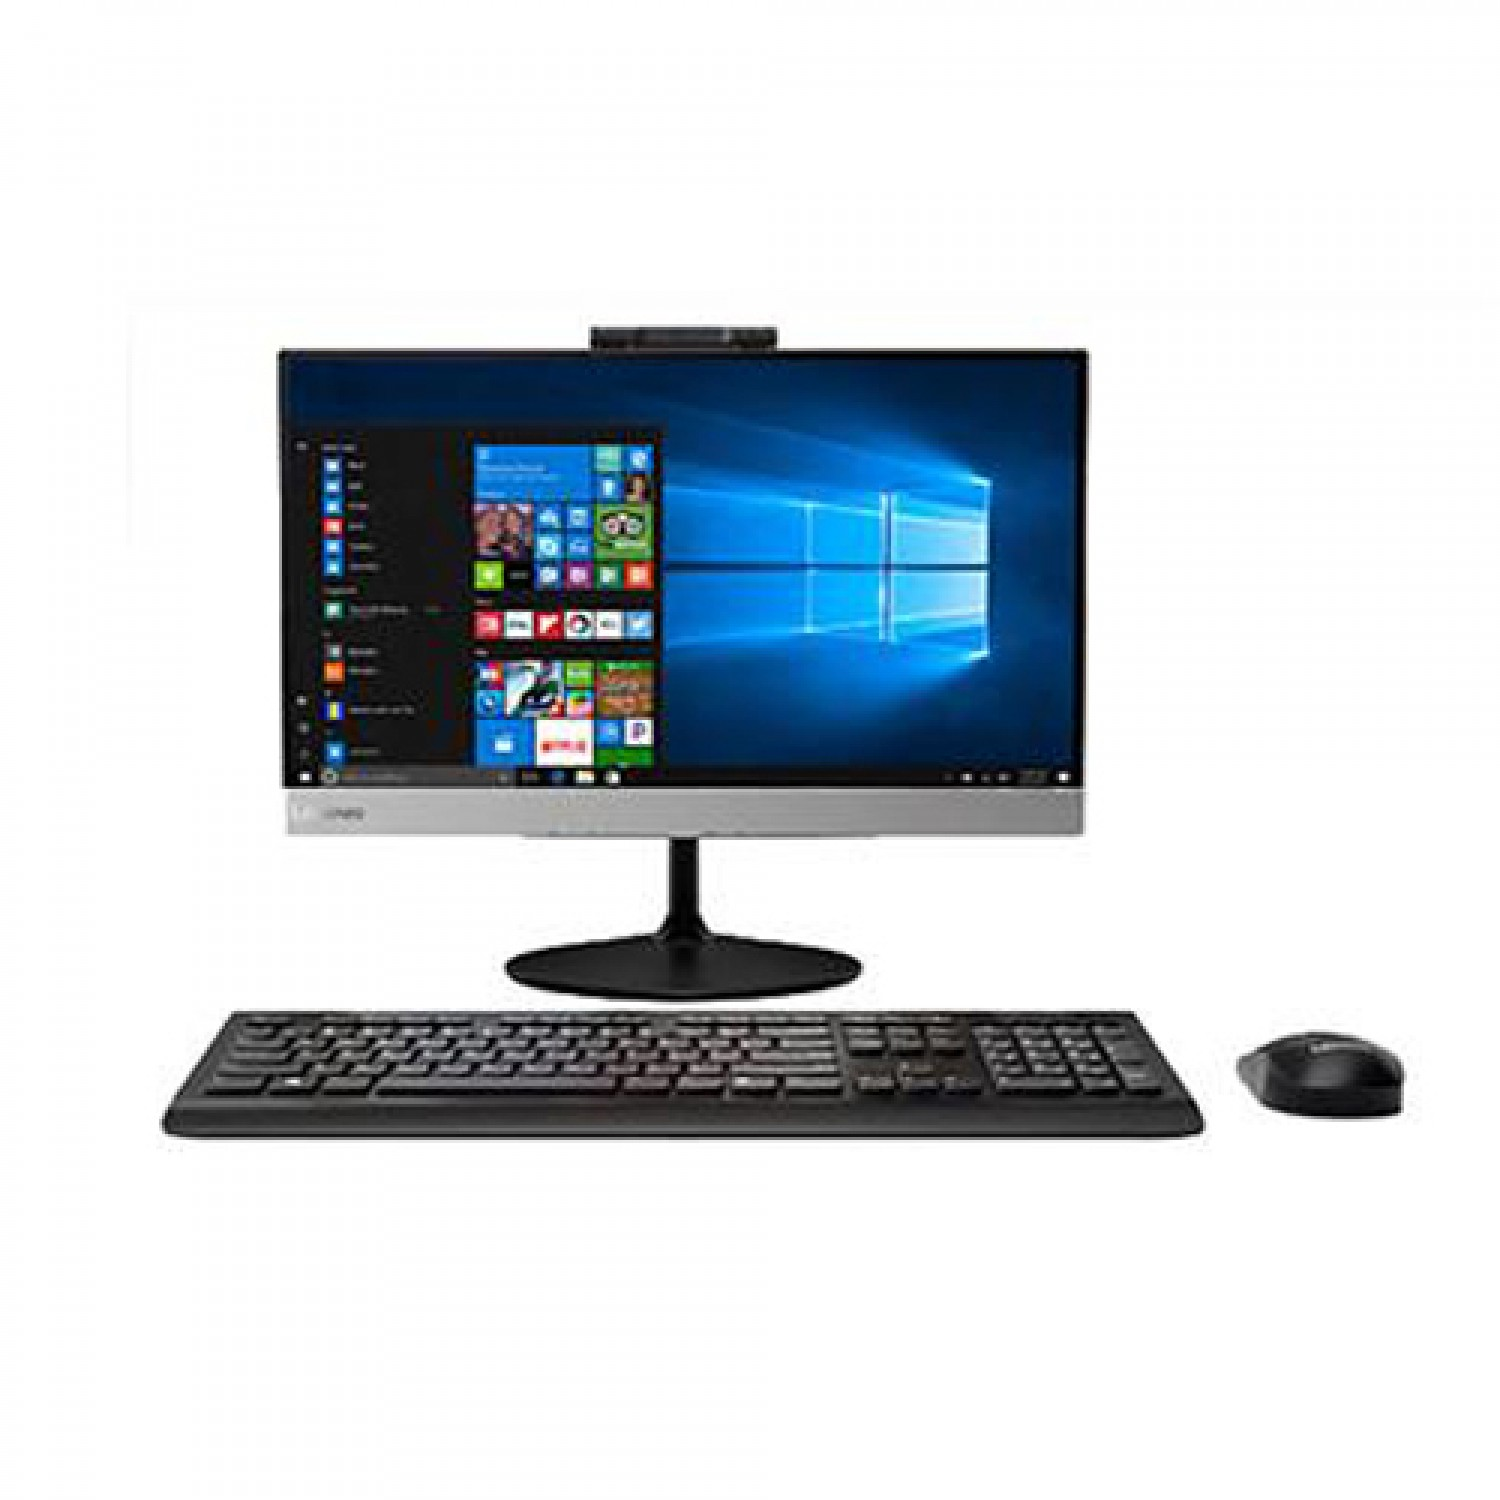 LENOVO PC V130-20 ALL IN ONE Computer BLACK 19.5INCH HD+ WLED NON-TOUCH WITH CAMERA INTEL J5040 (CEL 2.0GHZ BURST 2.7GHZ 4MB) INTEL HD SHARED 4GB RAM-DDR4 1TB DVDRW WIFI LAN USB HDMI VGA KB-ENGLISH MOUSE DOS